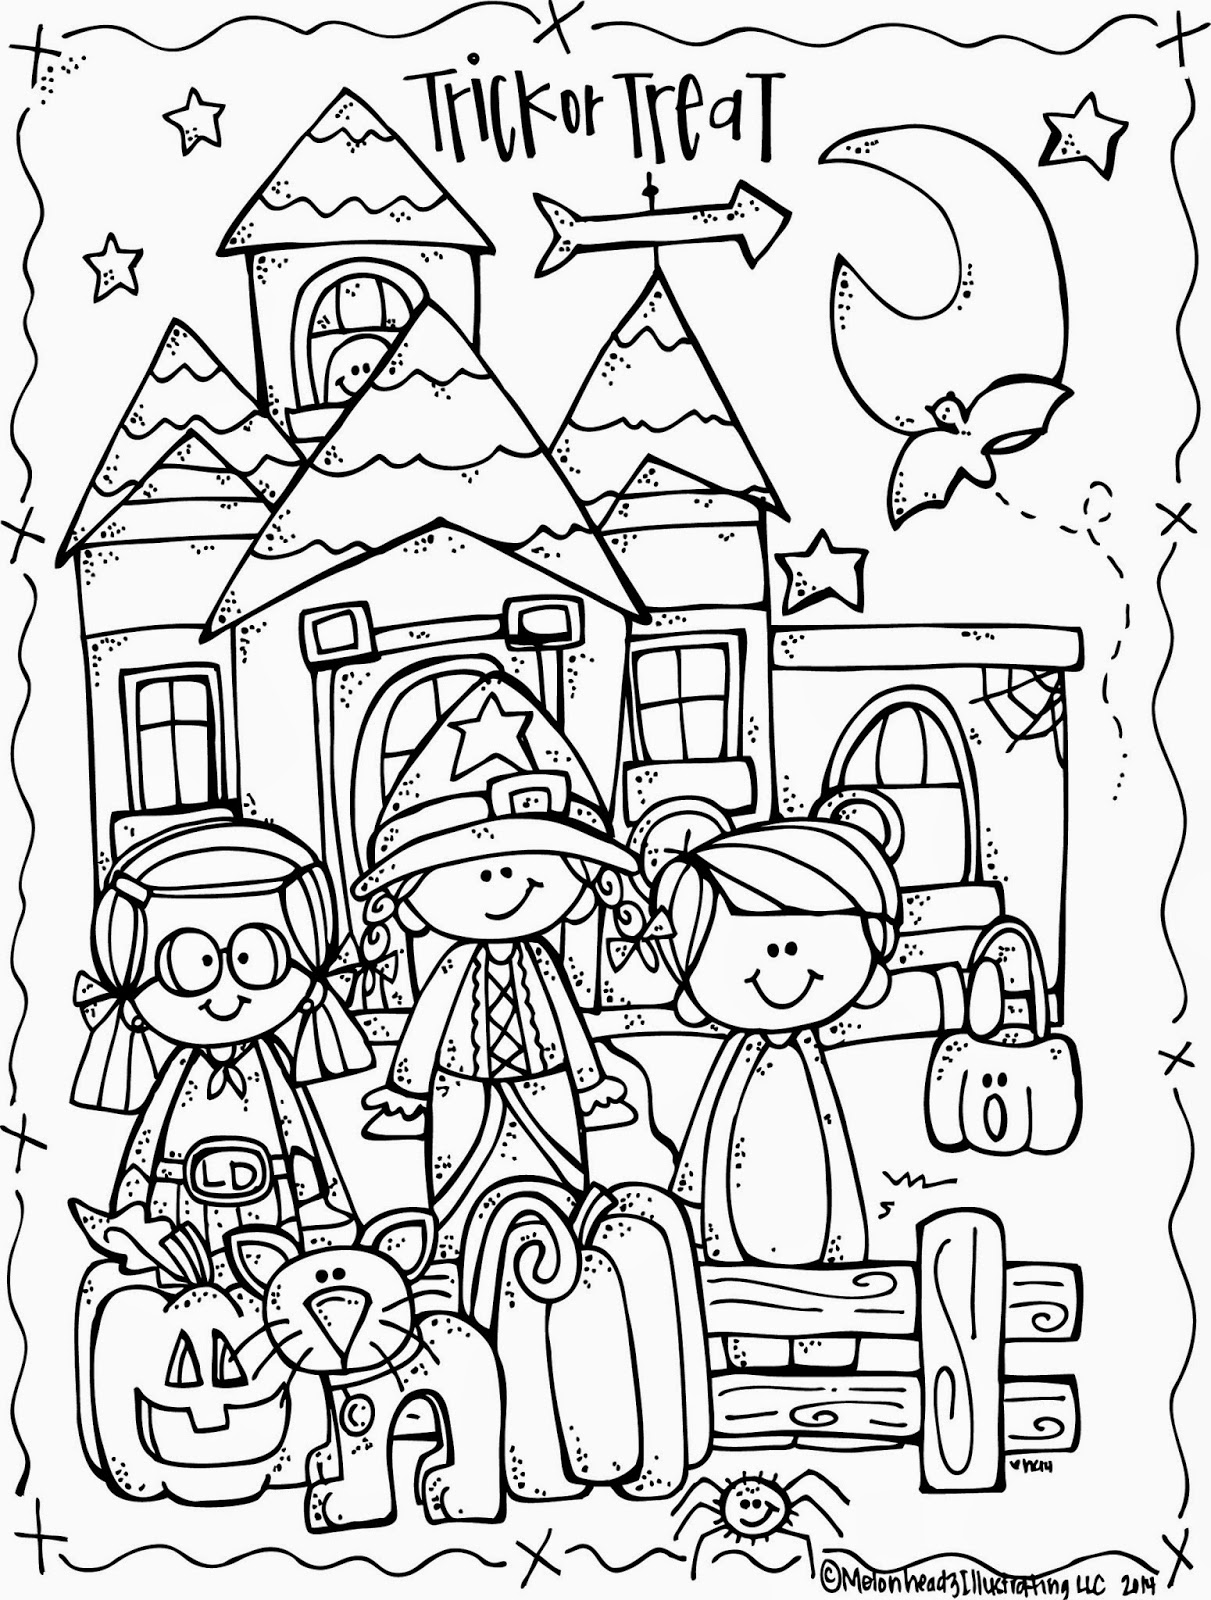 halween coloring pages - photo#4